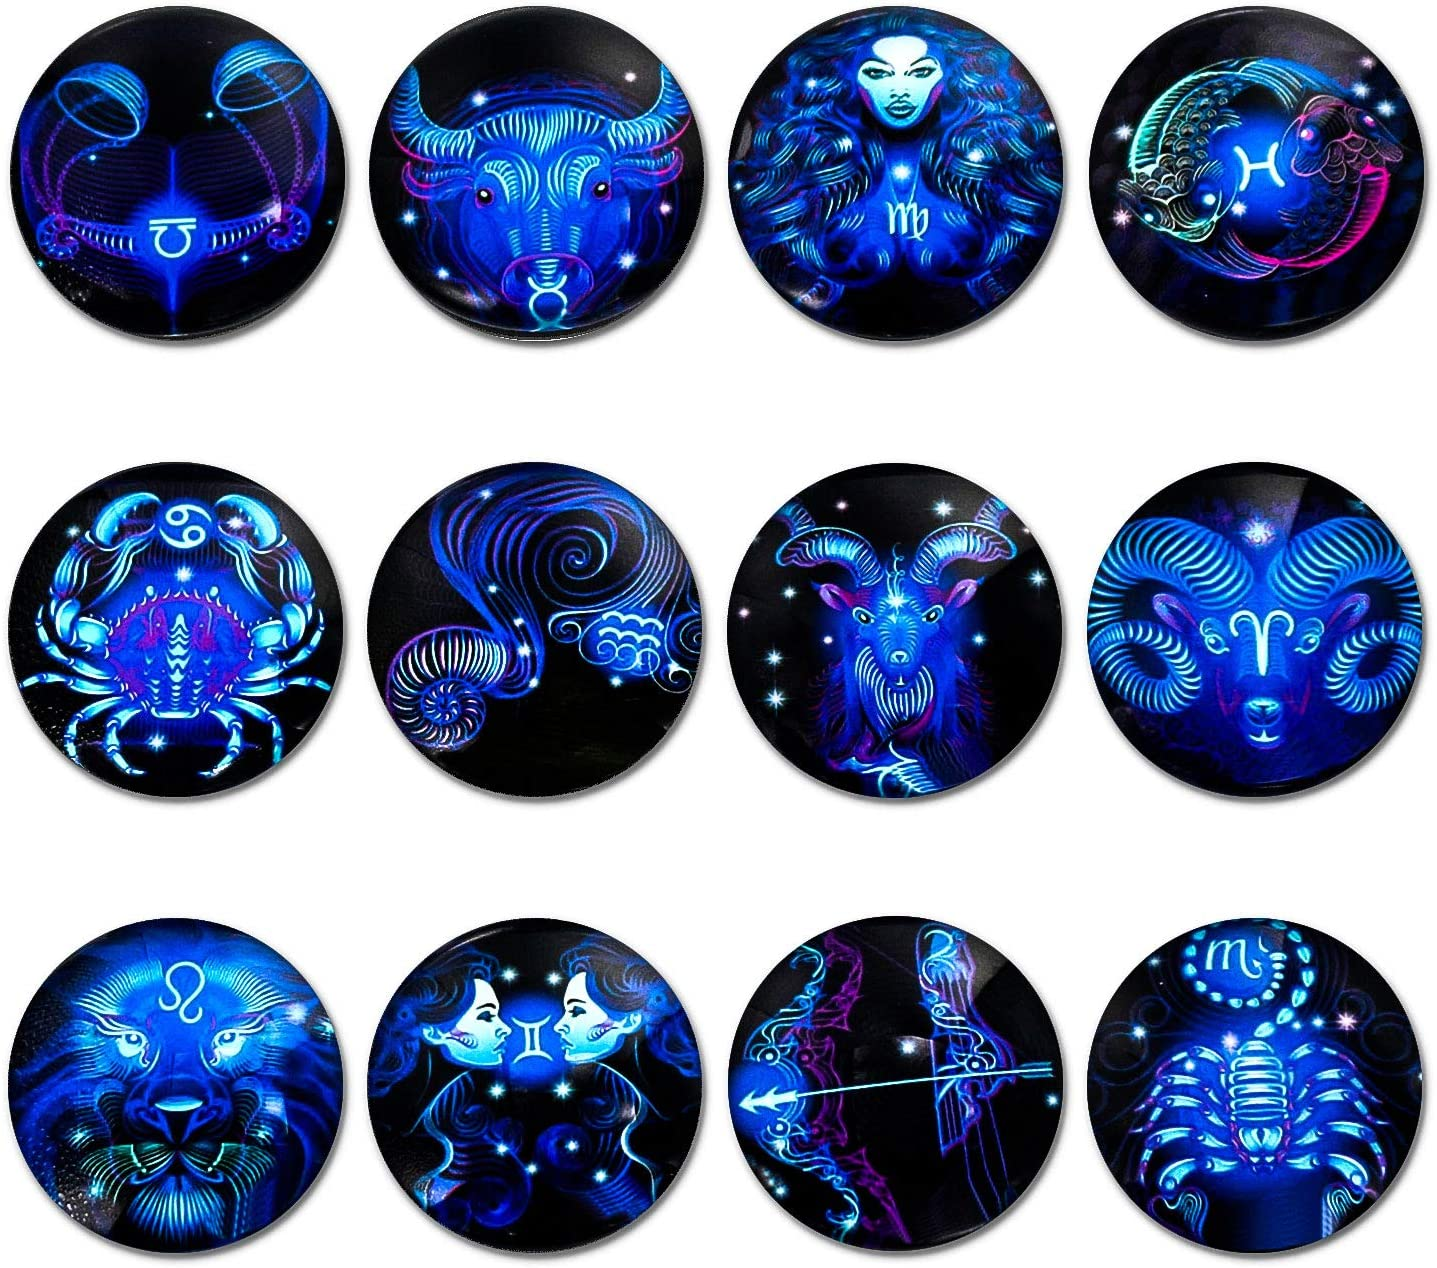 simpletome Fridge Magnets Strong 12Pack Luminous 3D Glass 1.58inch Diameter Bigger Size Lifelike for Refrigerator Office Whiteboard Home Decoration (Constellation)